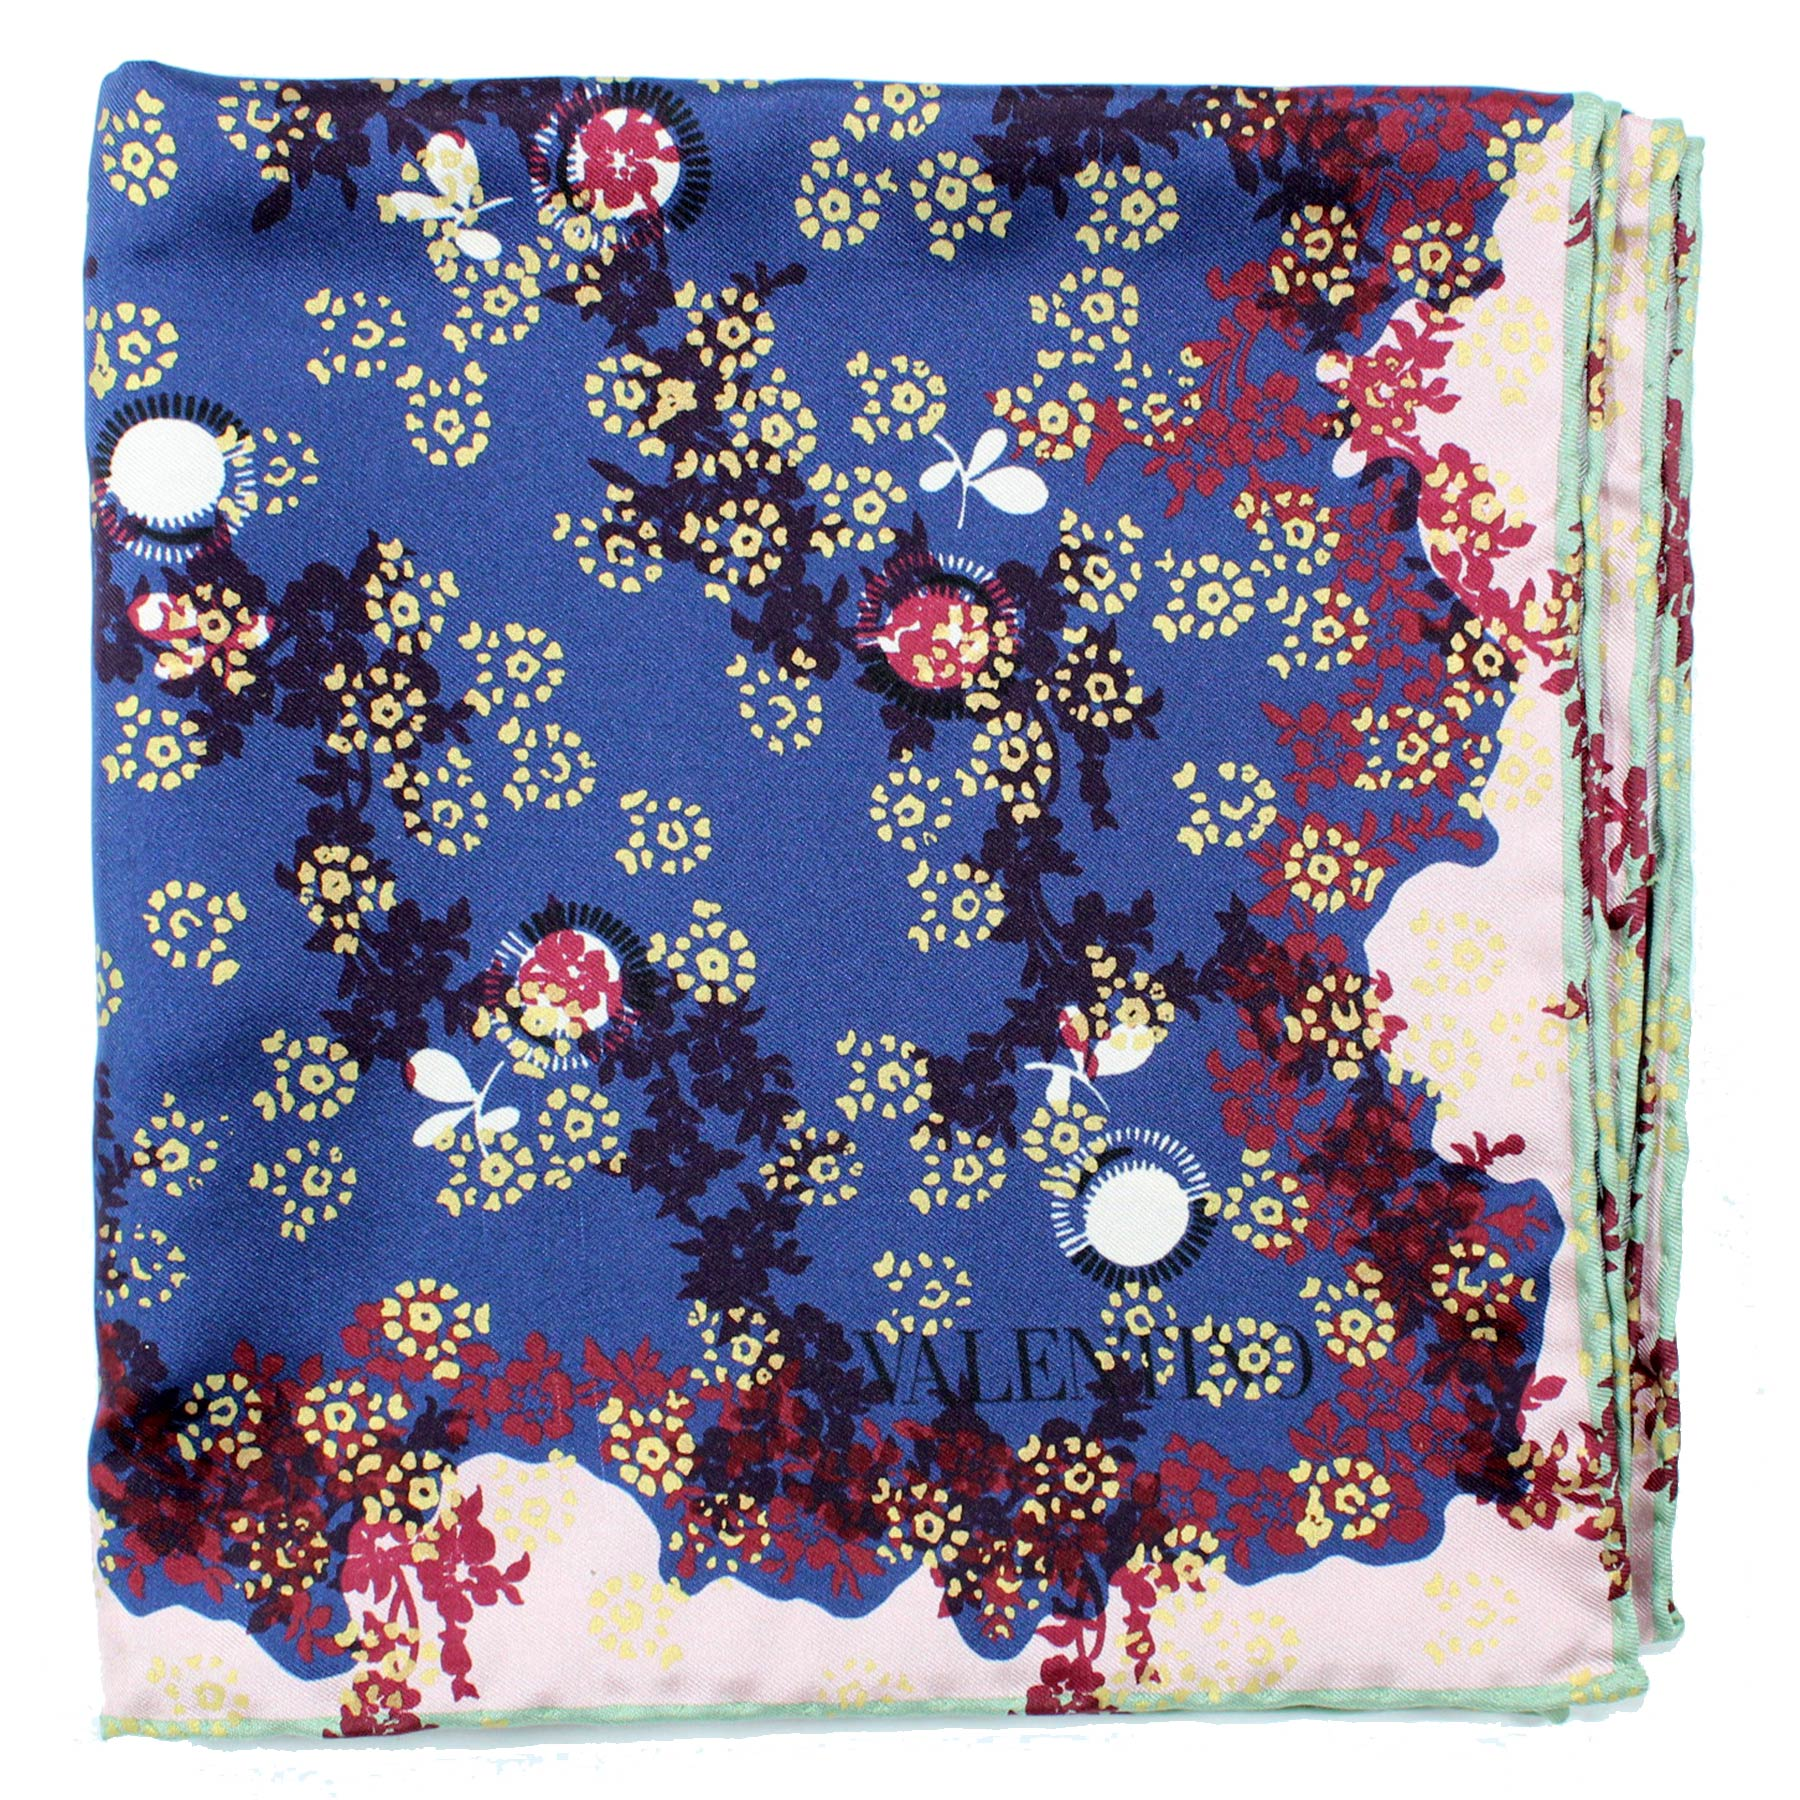 Valentino Scarf Midnight Blue Pink Design - Large Twill